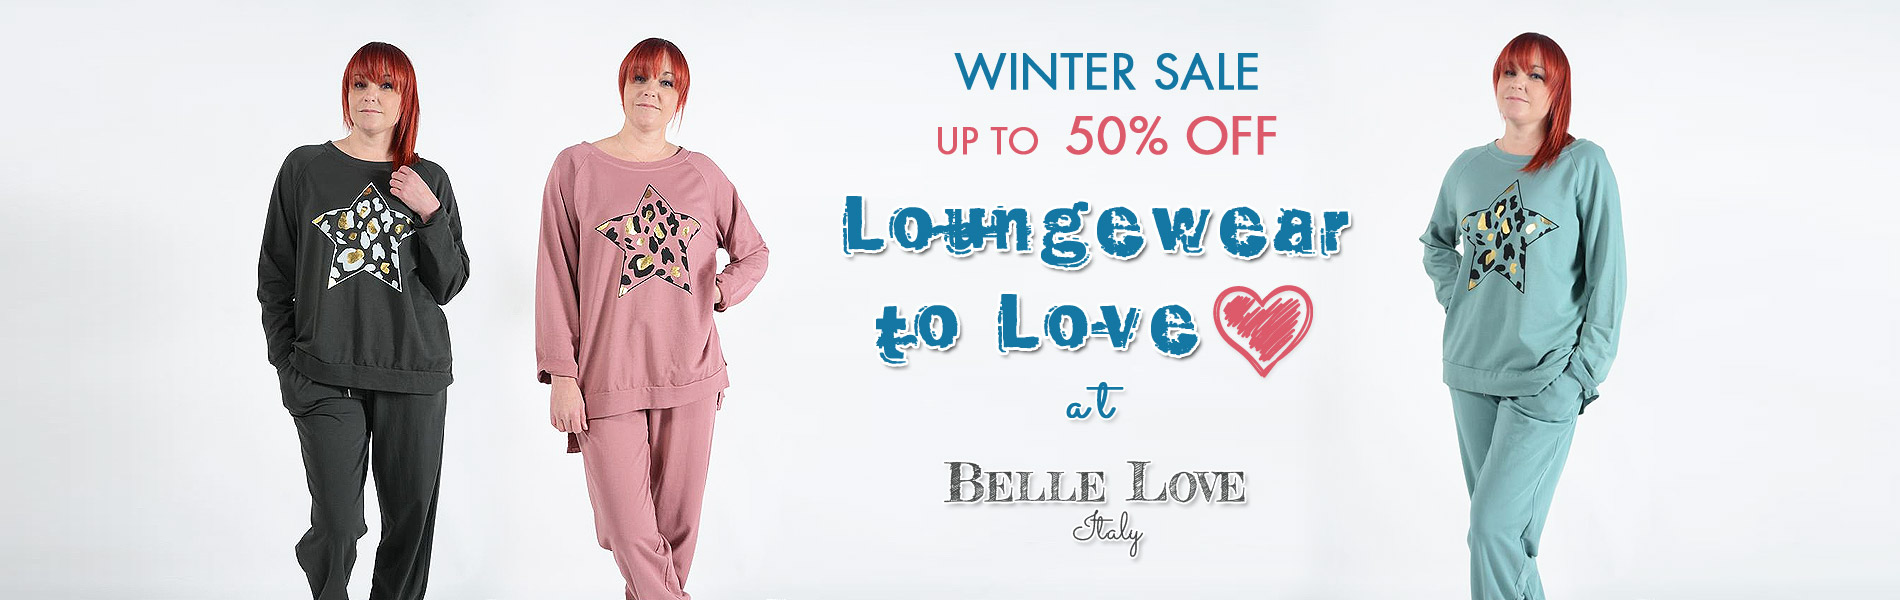 Loungewear to Love ❤️ at Belle Love Italy